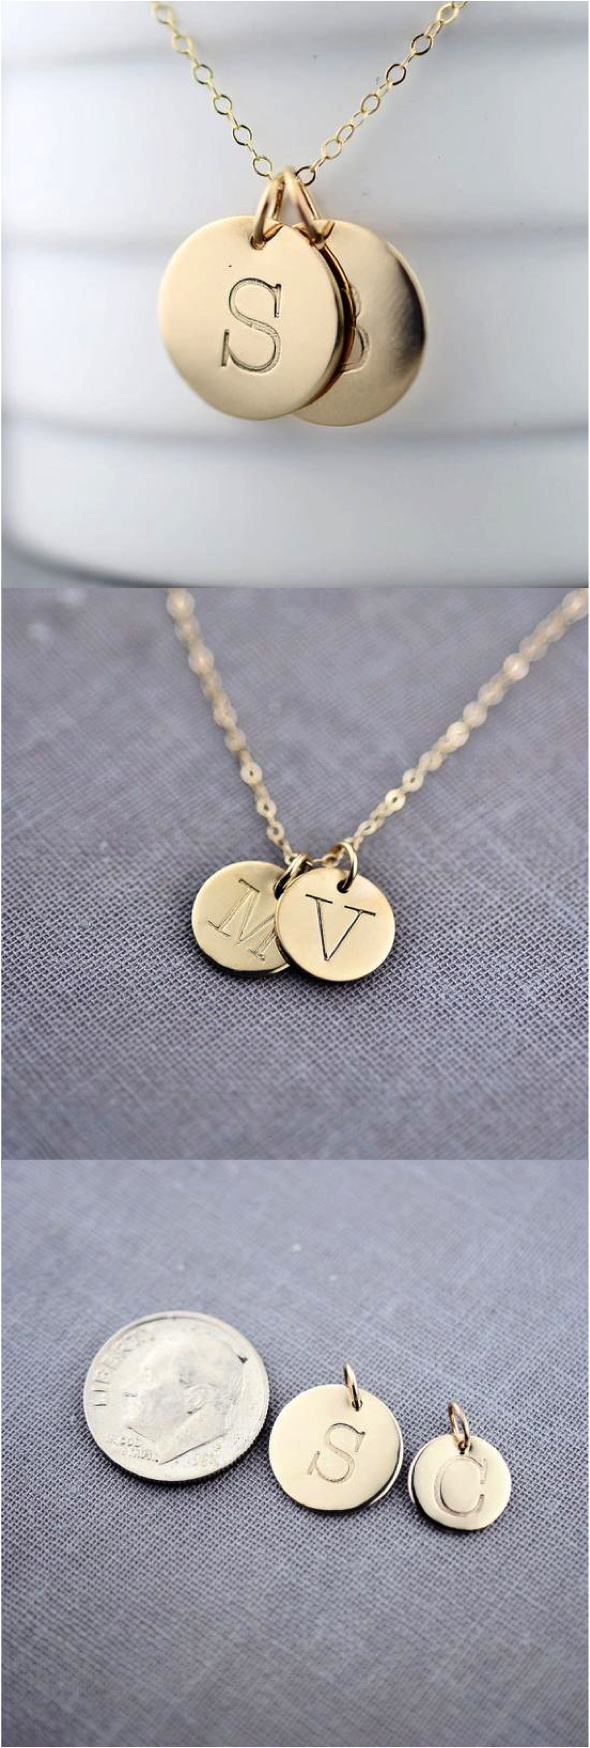 Personalized twin solid 14k gold initial necklace by lilyemmejewelry personalized twin solid 14k gold initial necklace by lilyemmejewelry wear your favorite letter on a aloadofball Choice Image